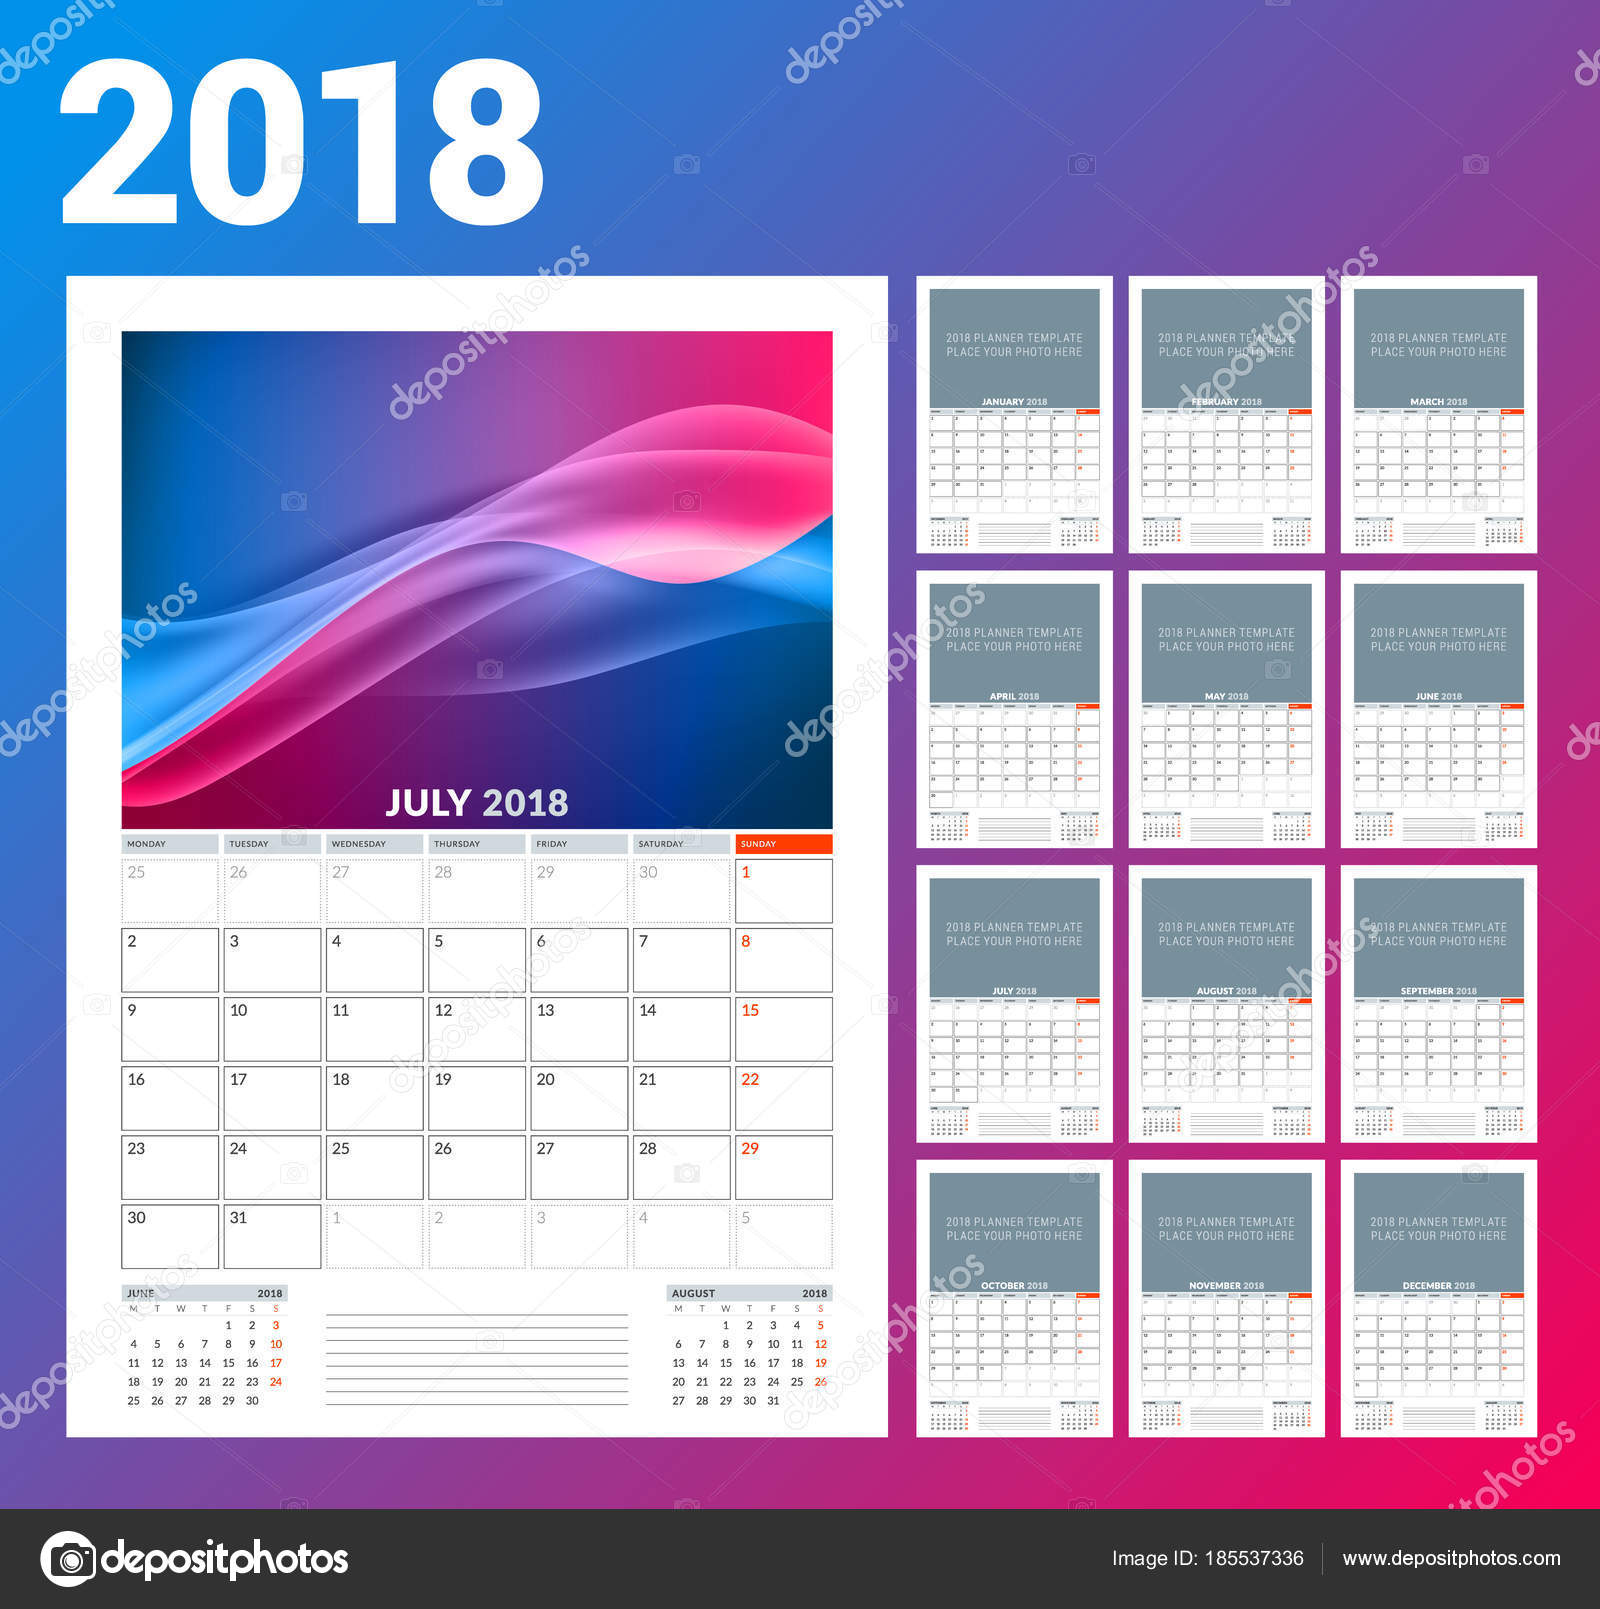 Wall Calendar Template For 2018 Year Vector Illustration Set Of 12